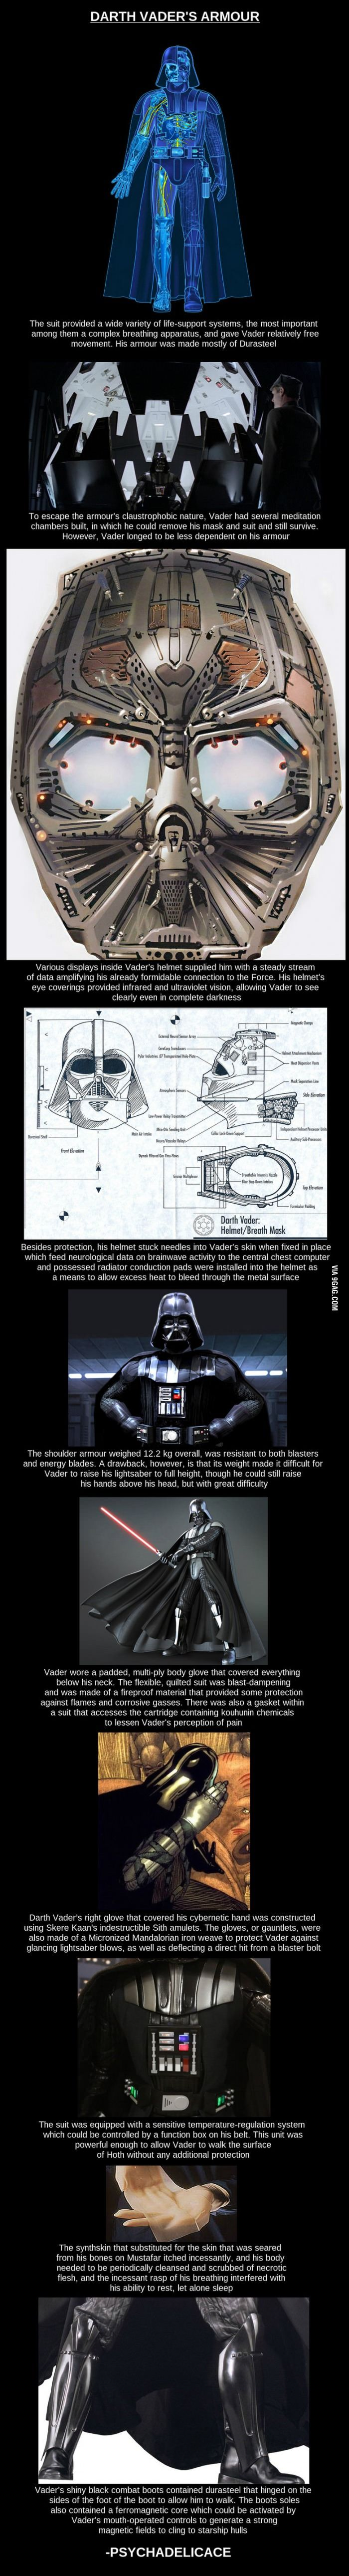 Vader's armor. Pretty neat